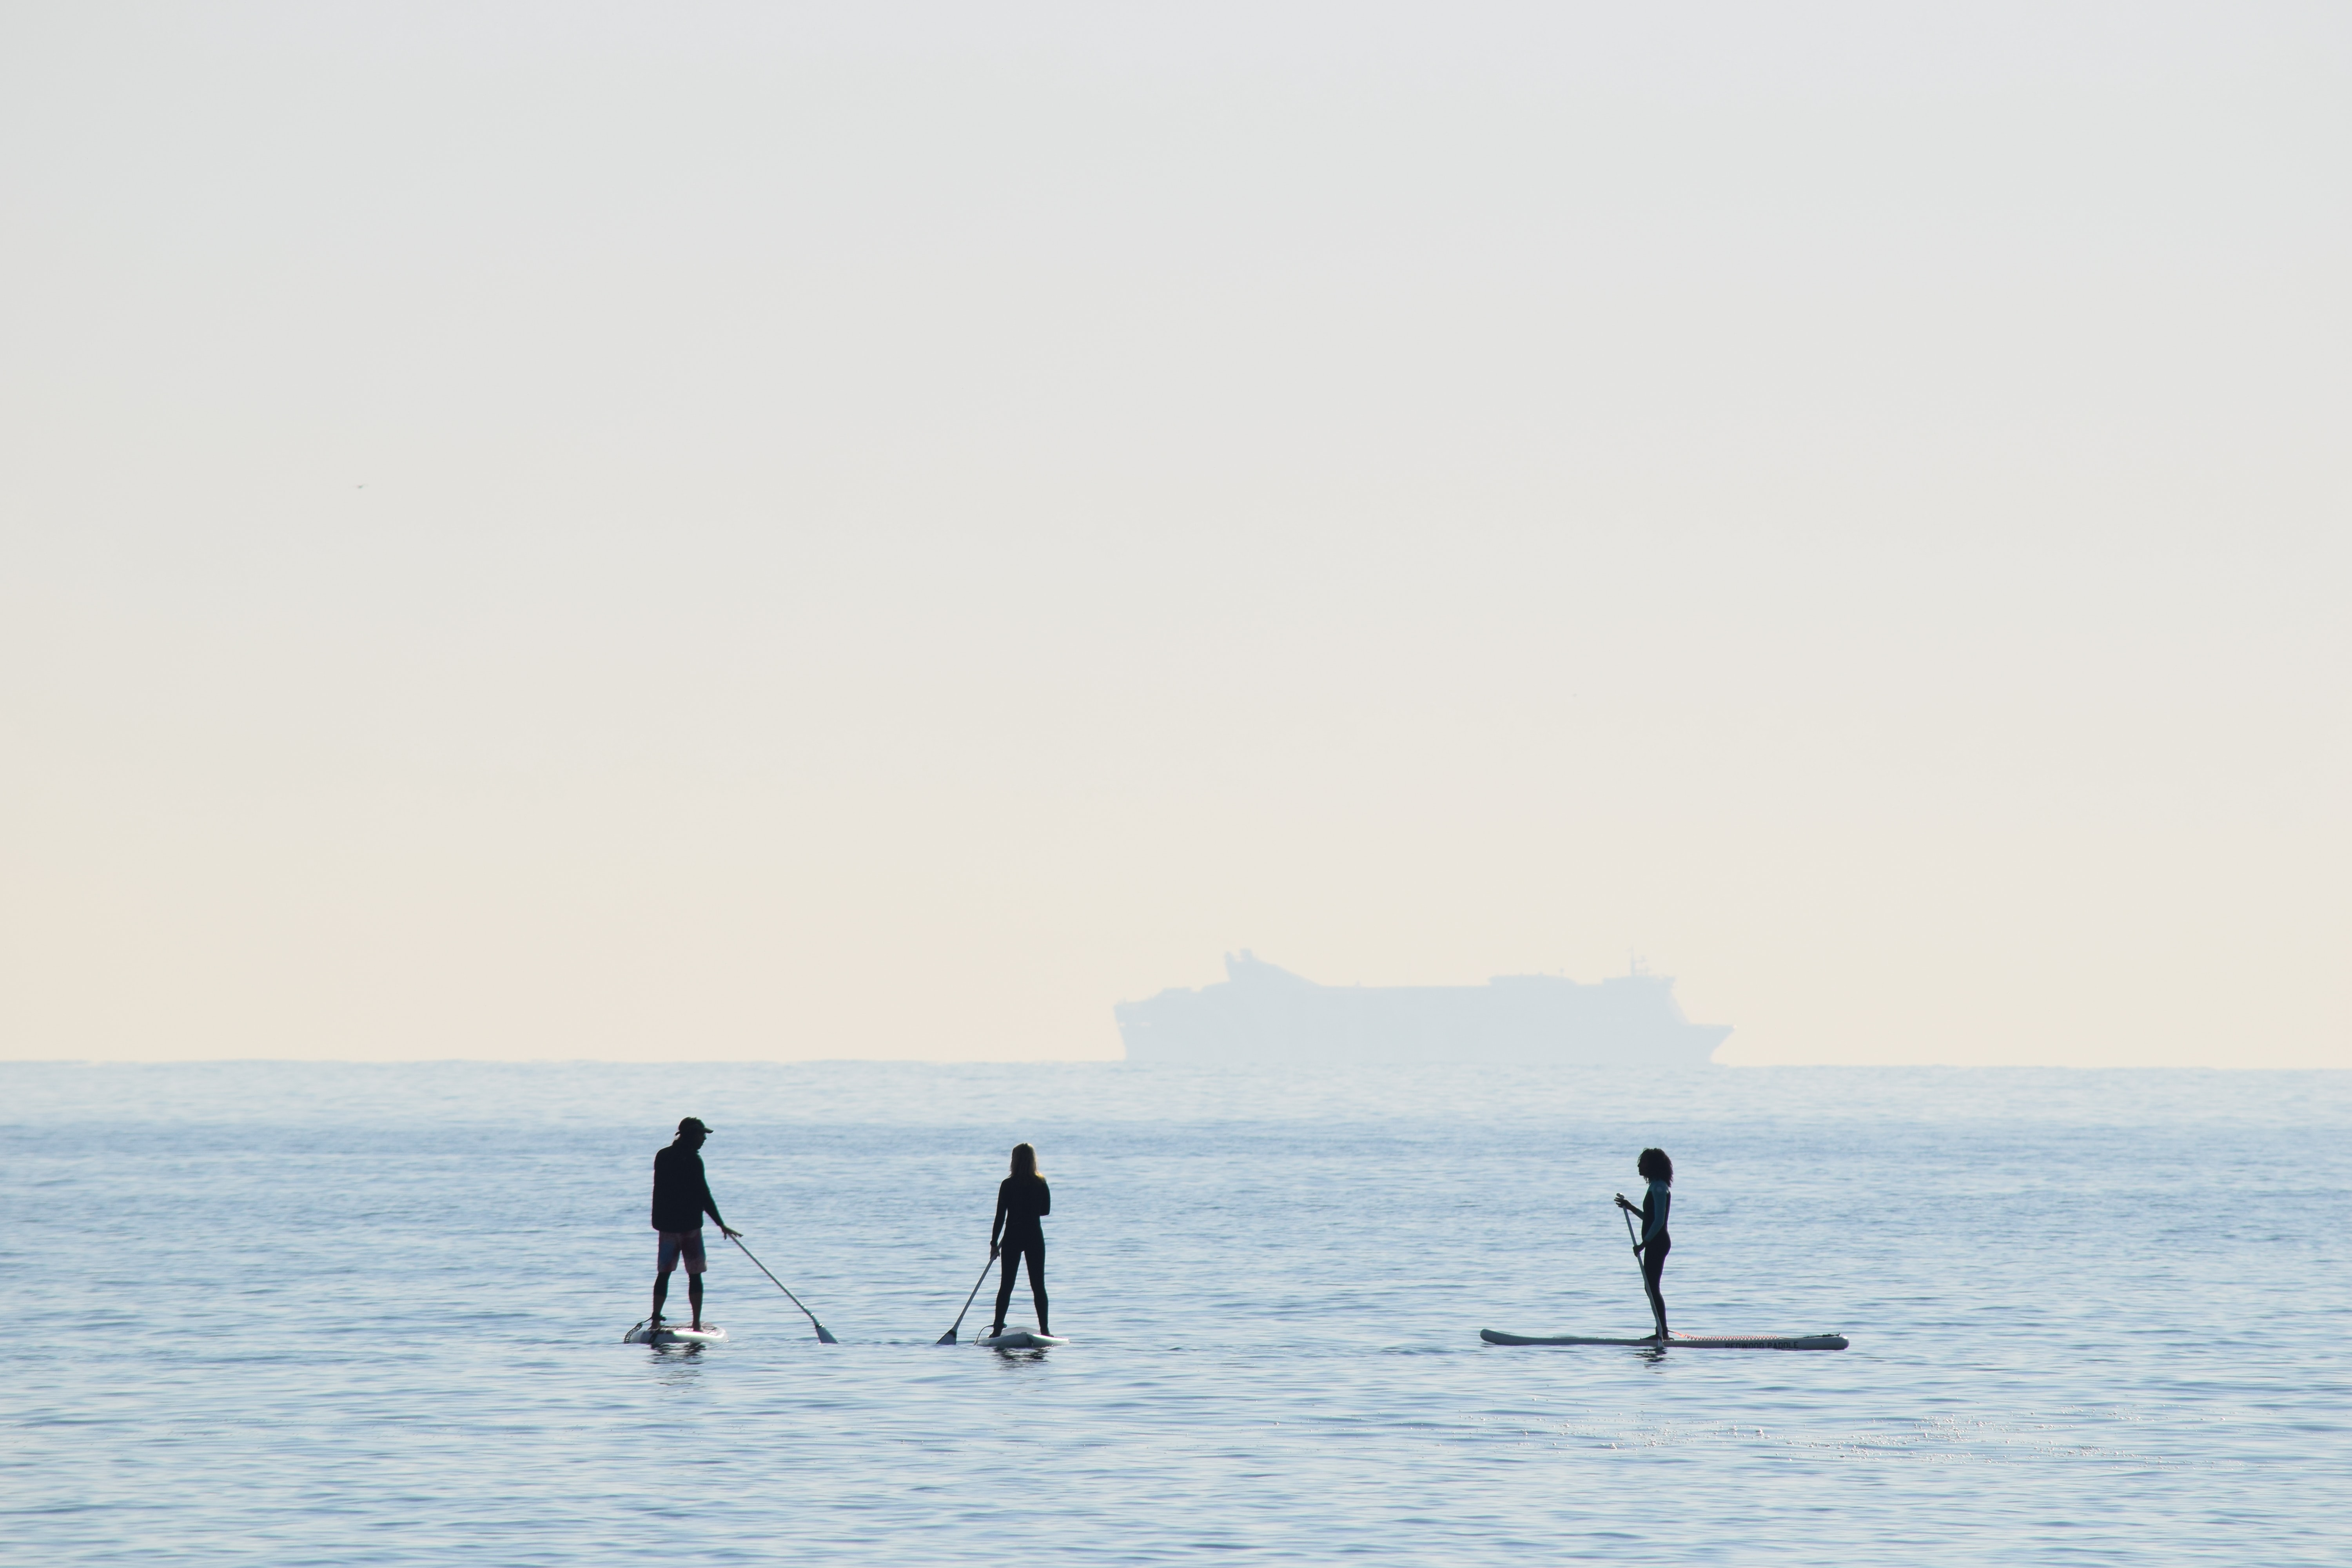 people riding on paddle boards